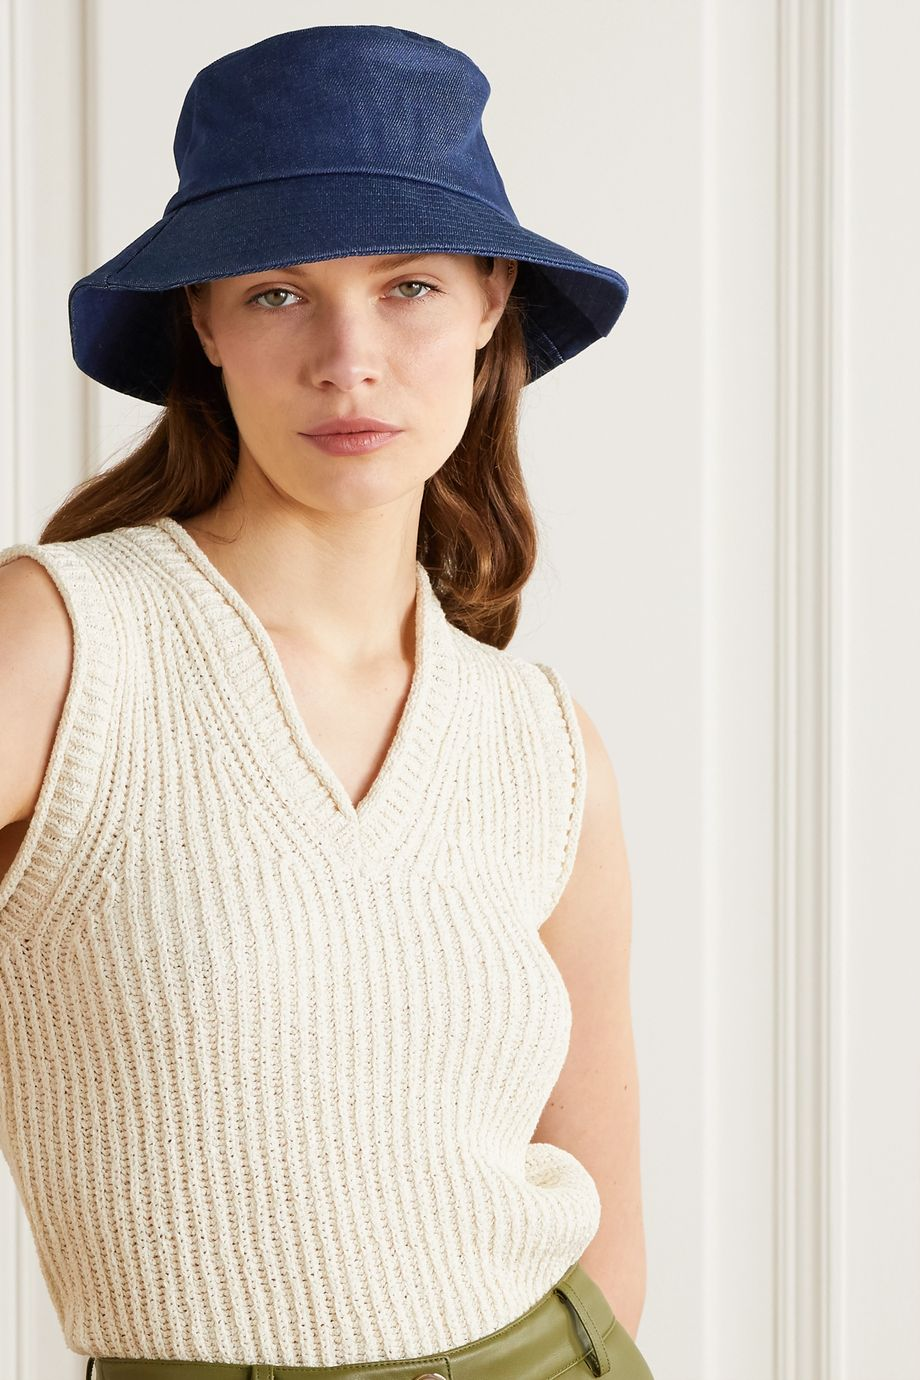 Loeffler Randall Ivy denim bucket hat